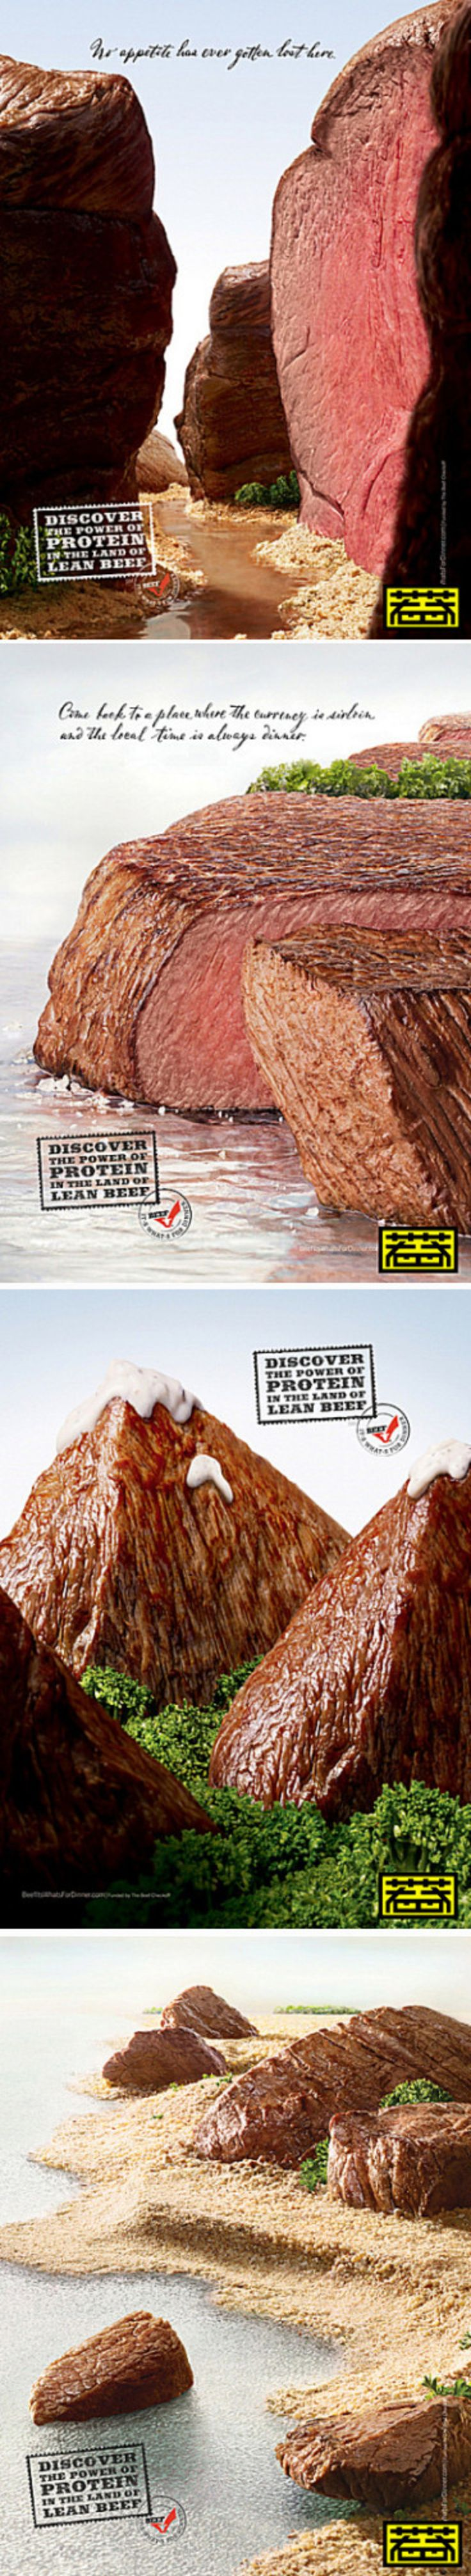 Meat Ad